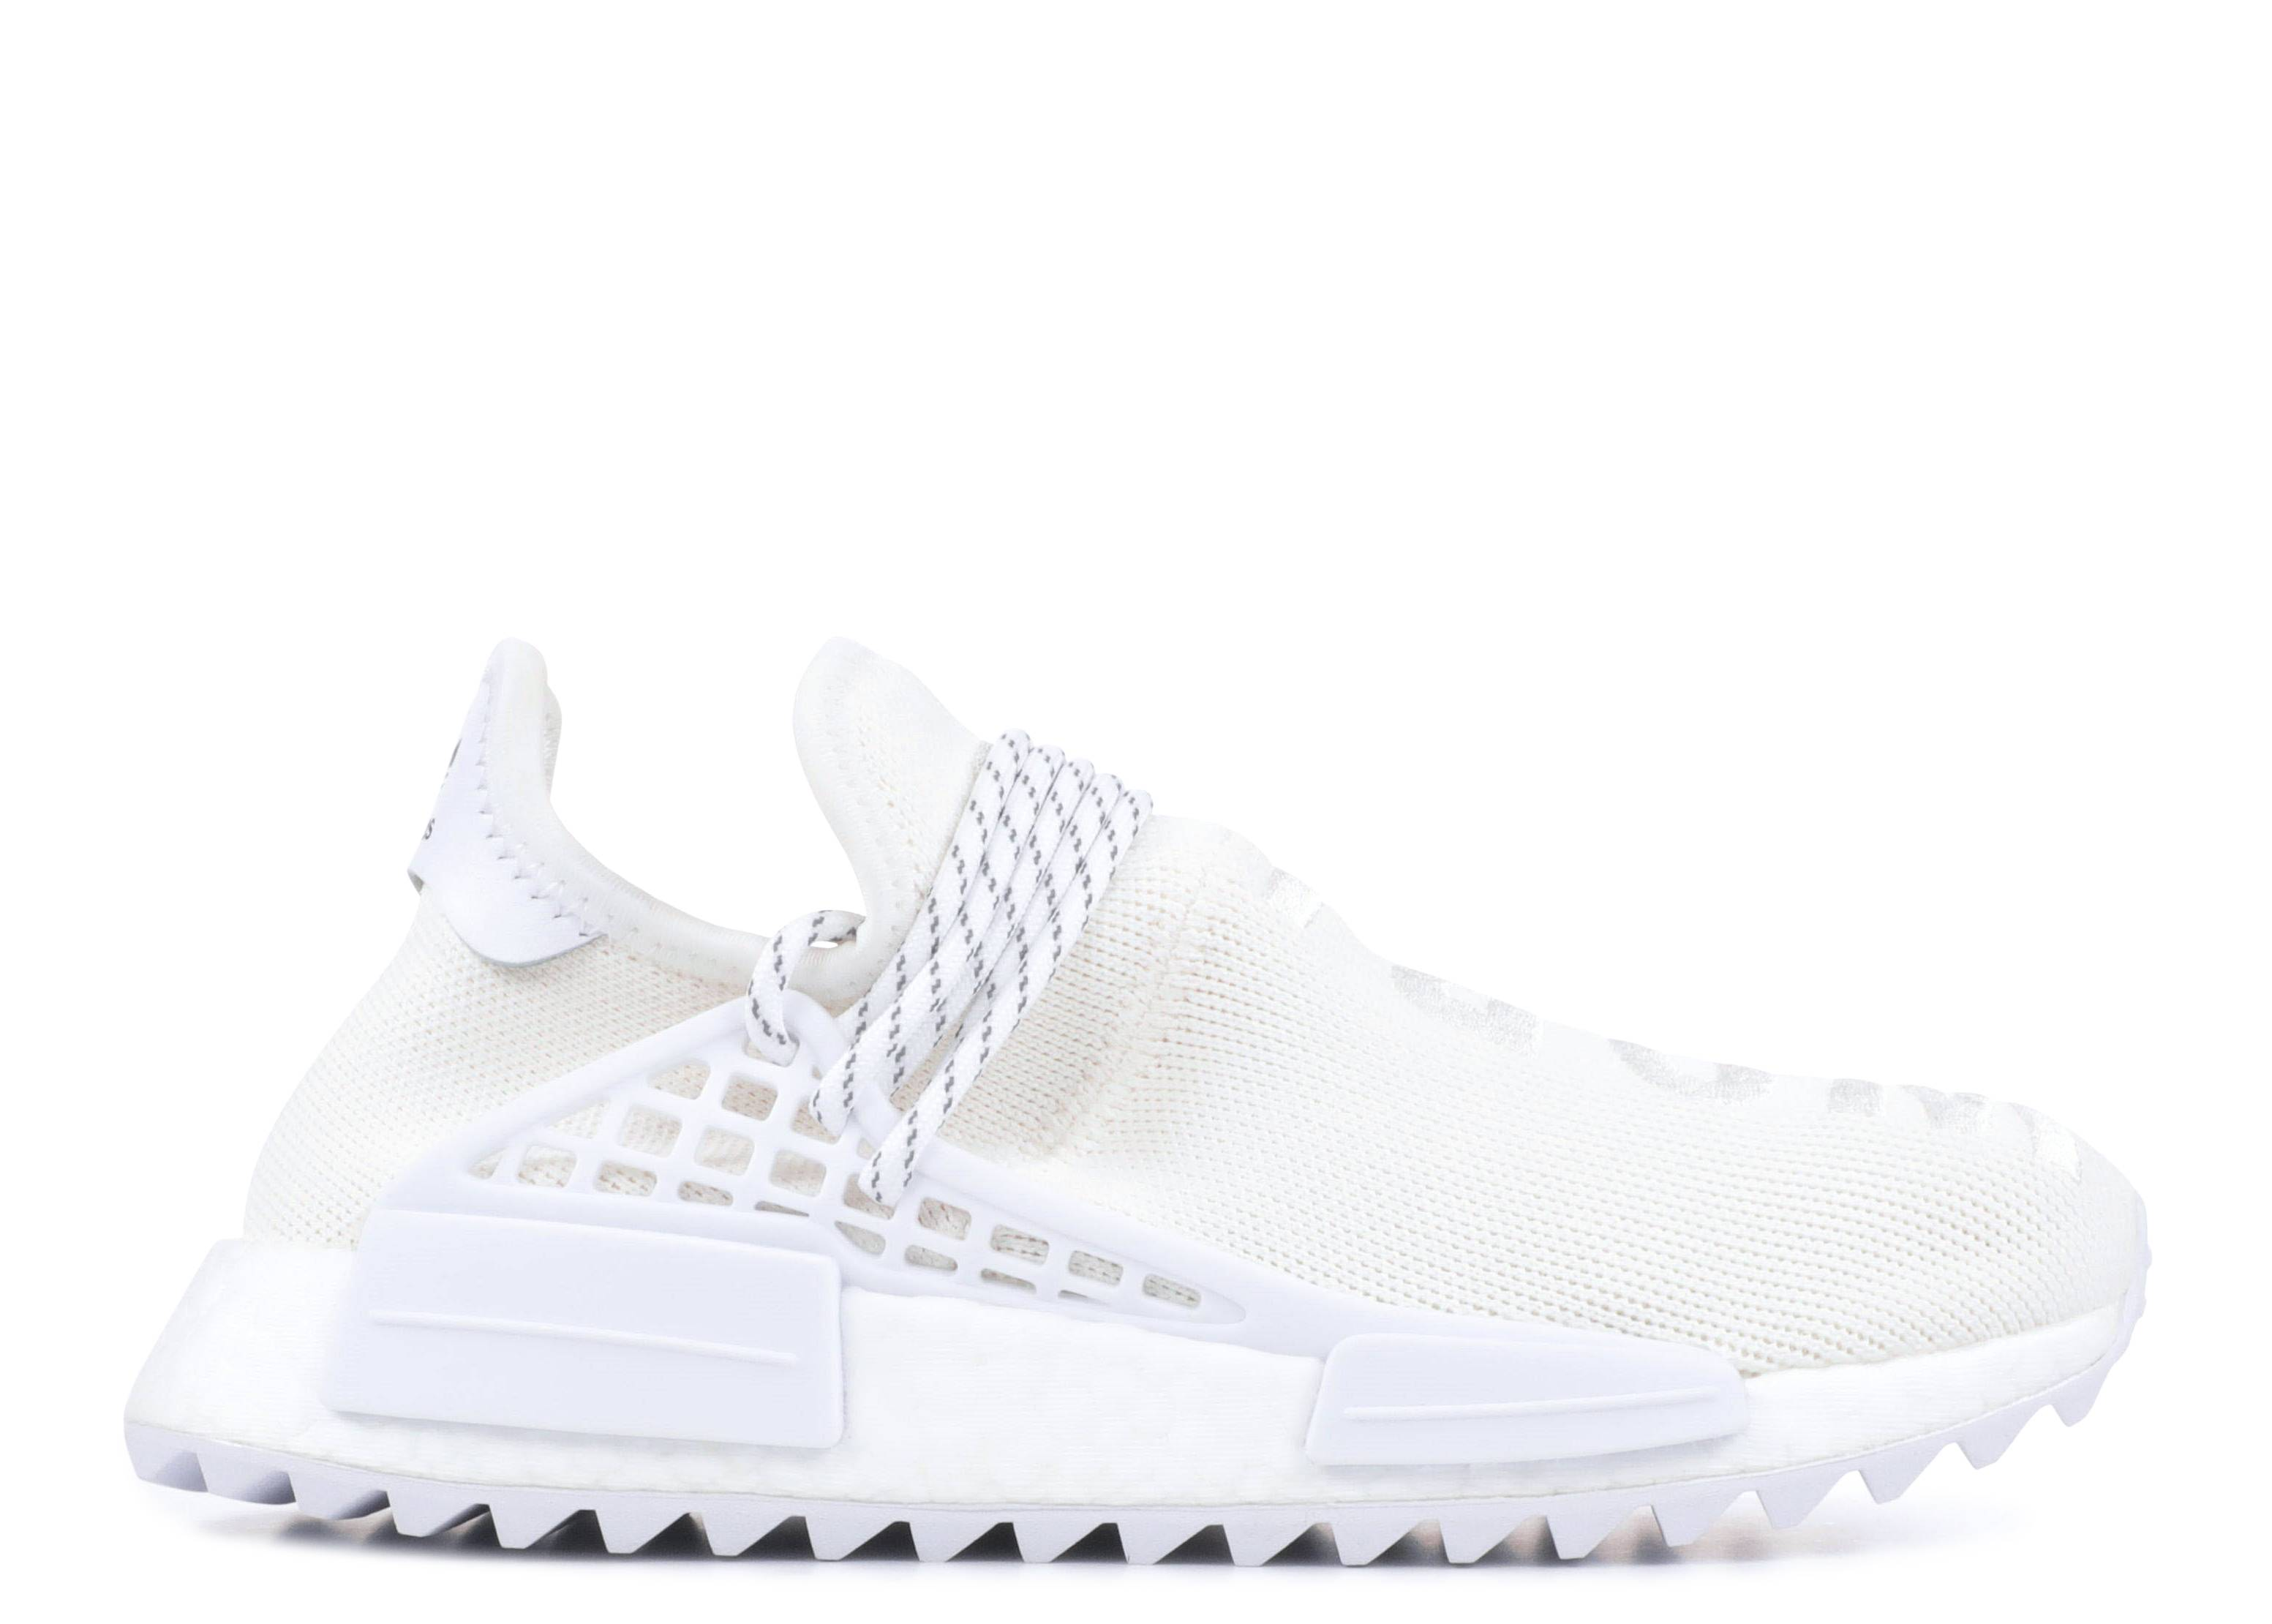 quality design 5ff3f 2f747 Pharrell - Adidas | Flight Club